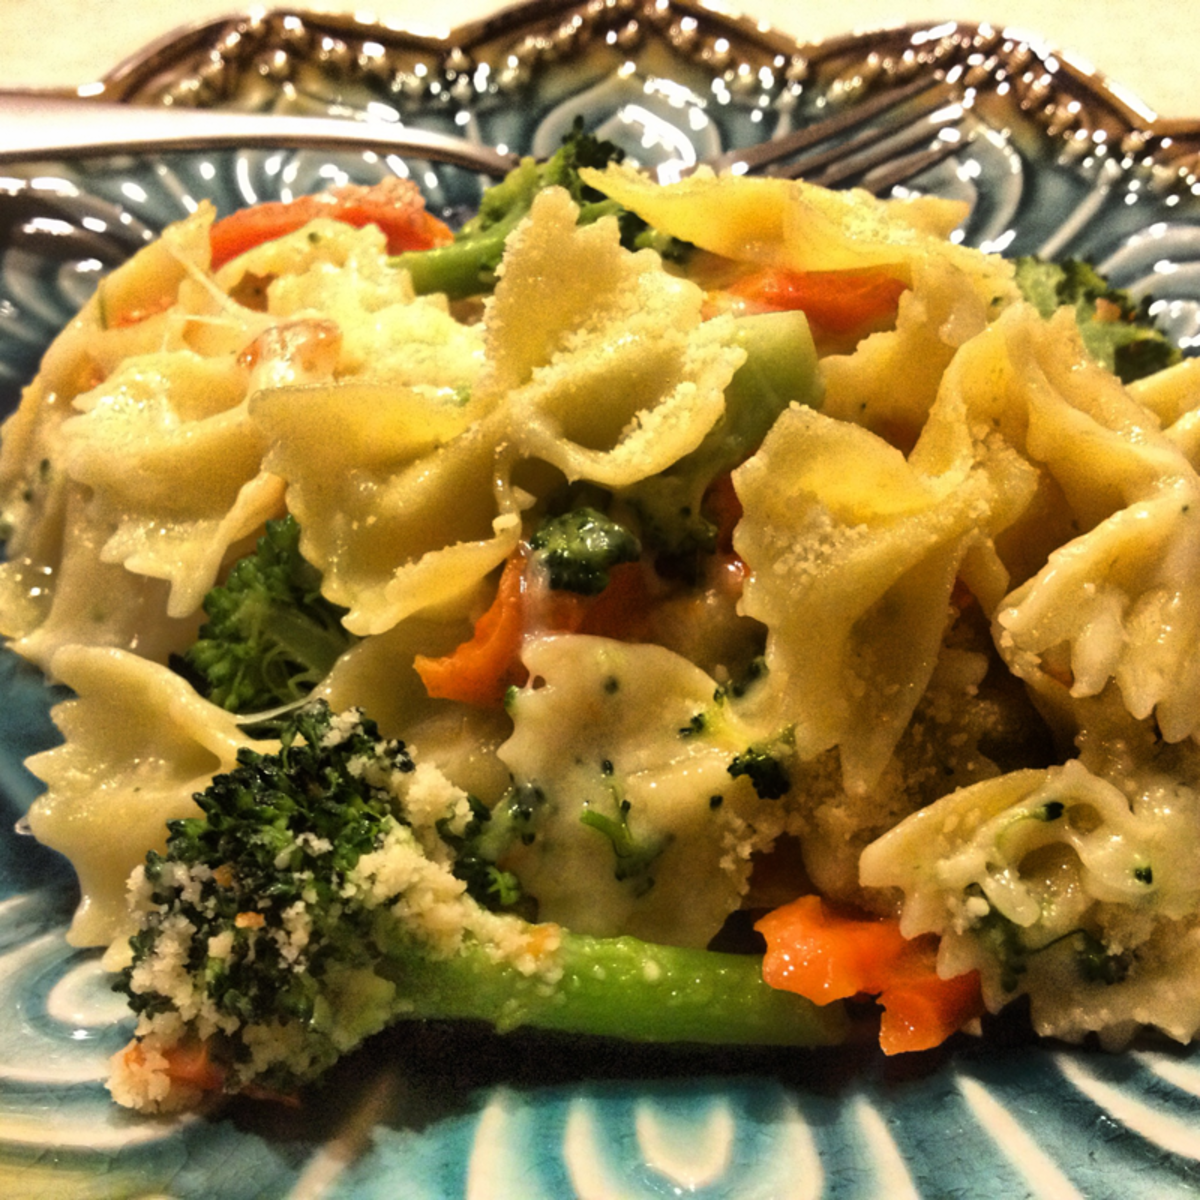 Quick Healthy Pasta Recipes - Four Cheese Pasta with Veggies